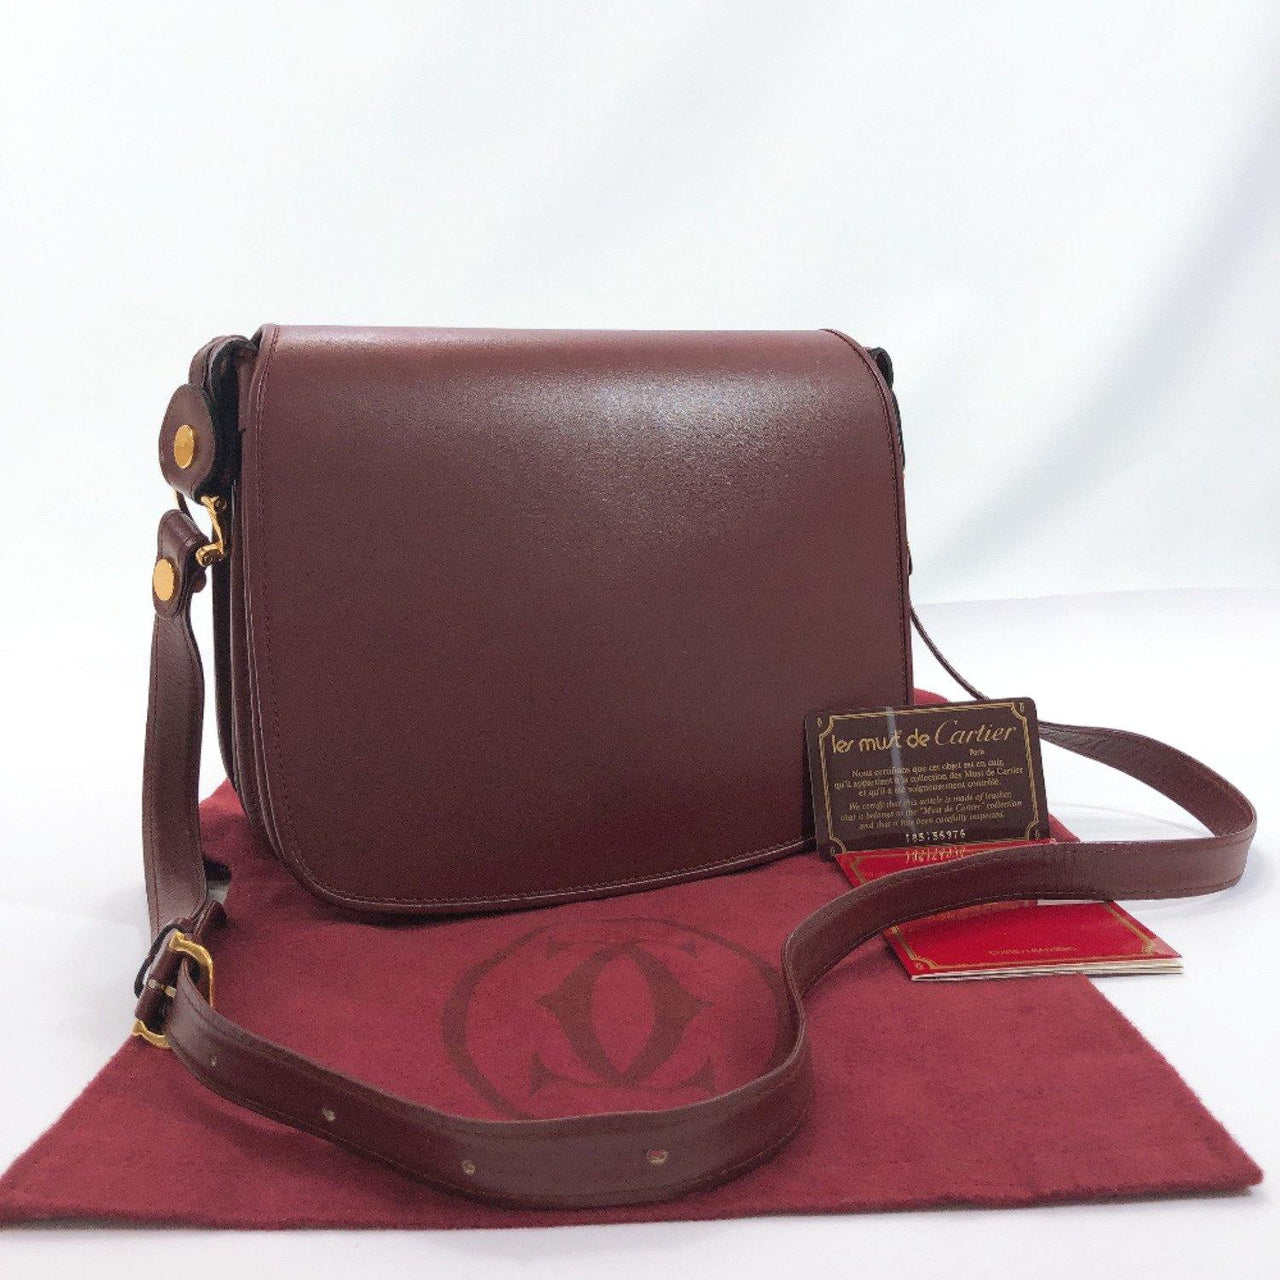 CARTIER Shoulder Bag Must Line vintage leather wine-red Women Used - JP-BRANDS.com